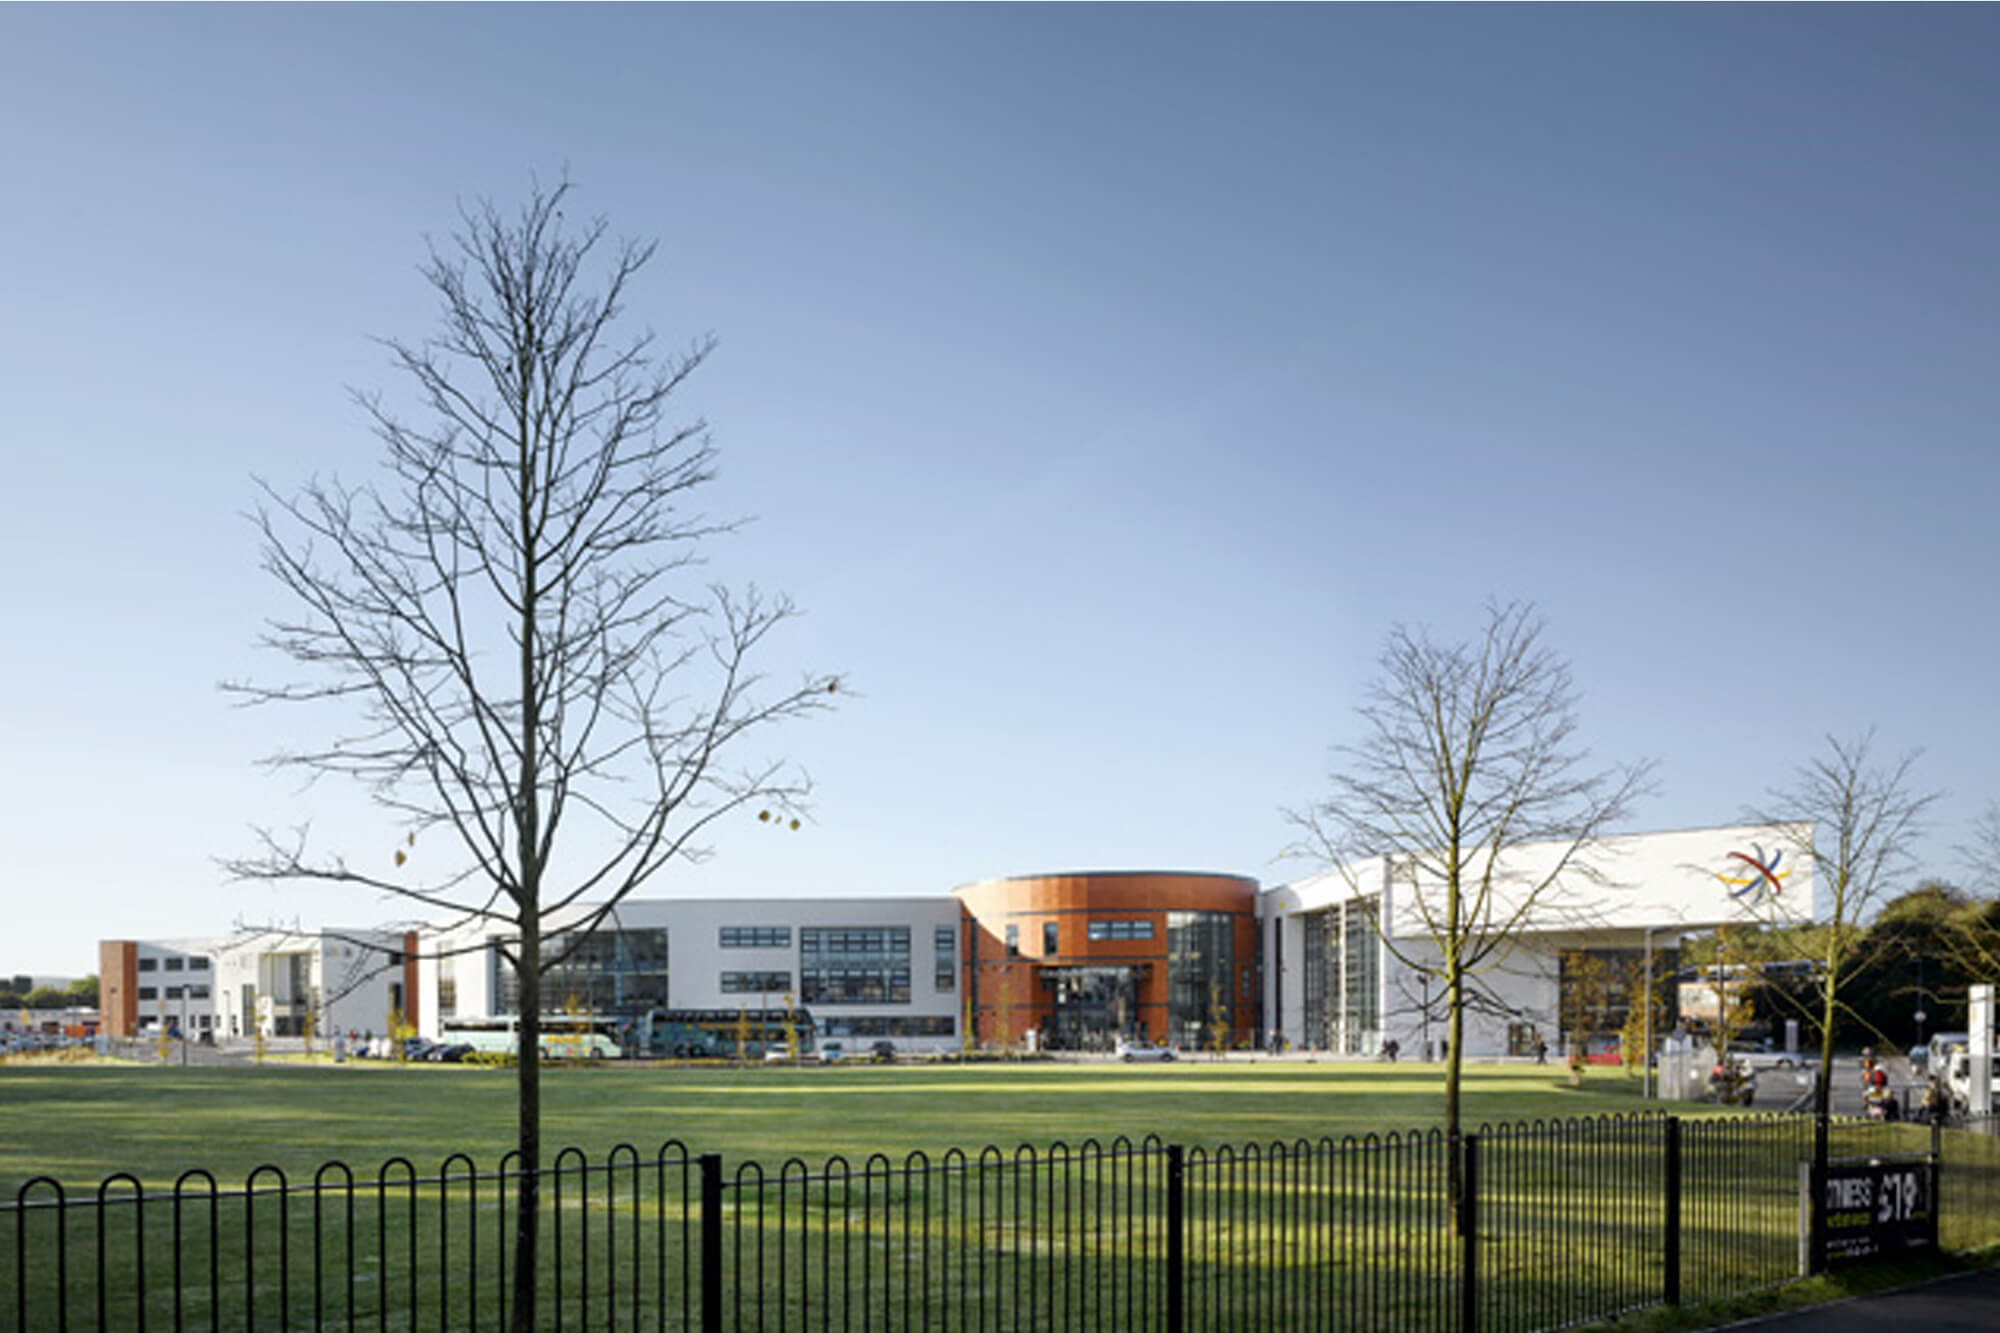 Outside view of Macclesfield College in the sunshine